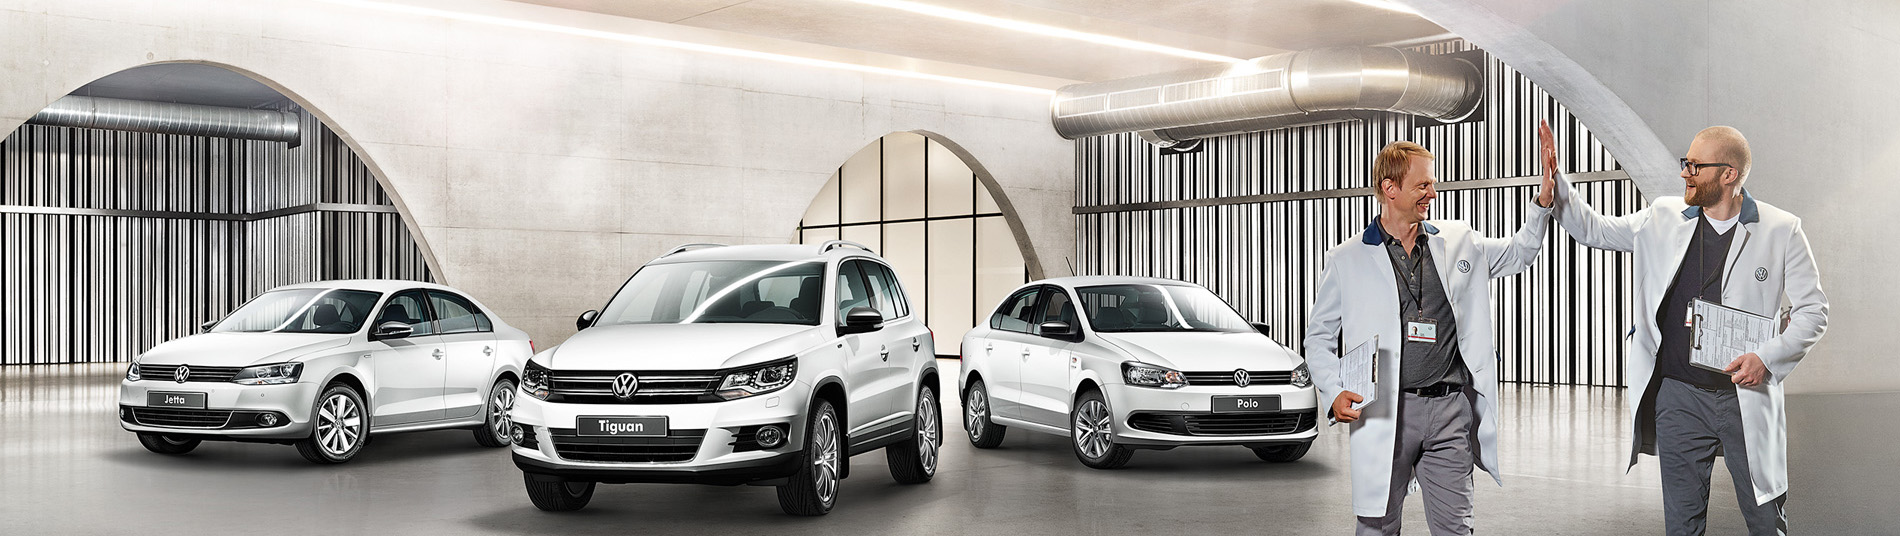 VW Olympic Campaign 2013 & 2014